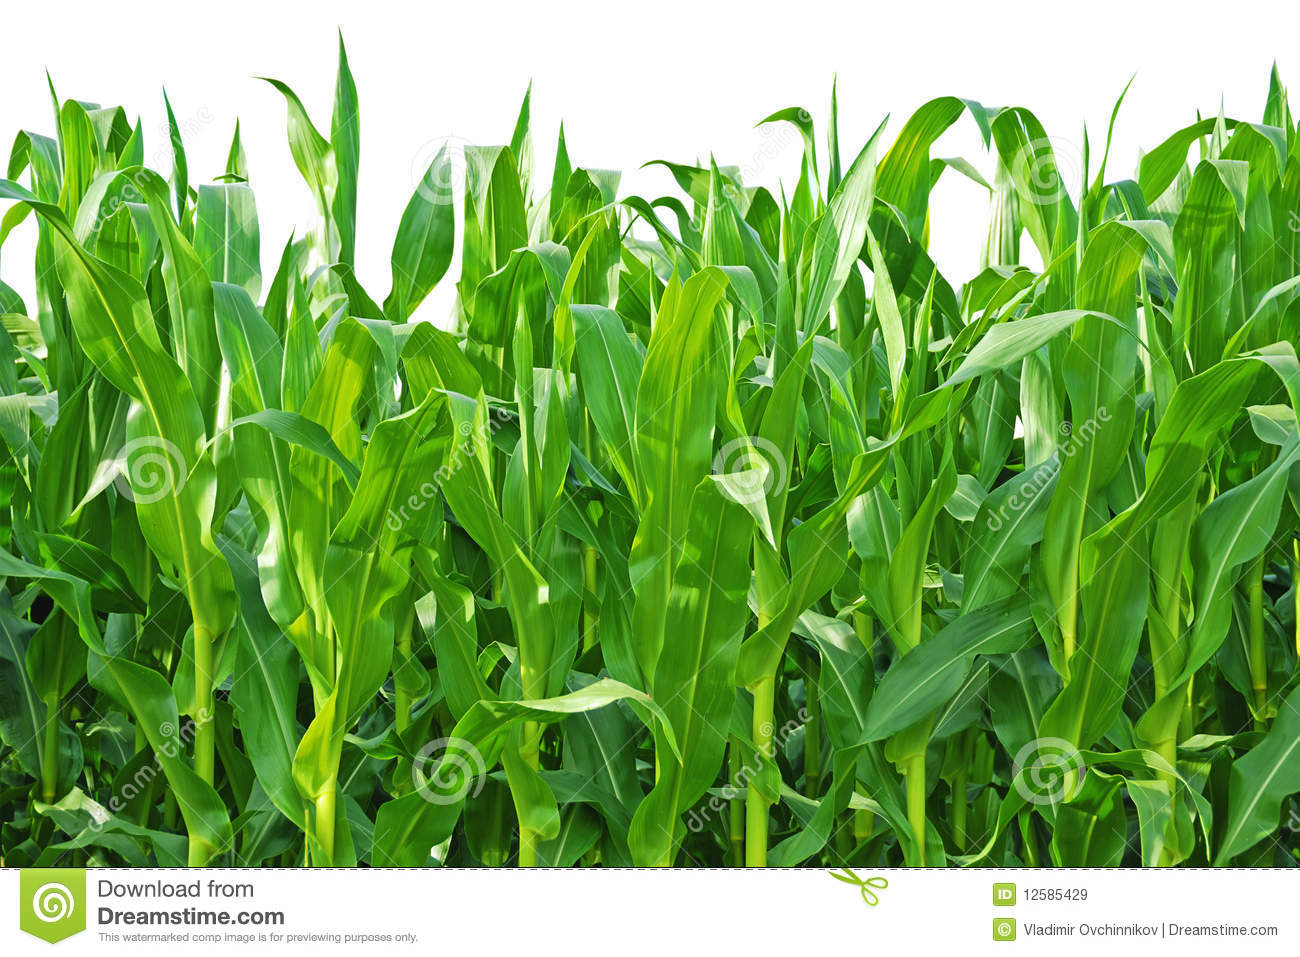 Field Of Corn Clipart - More information